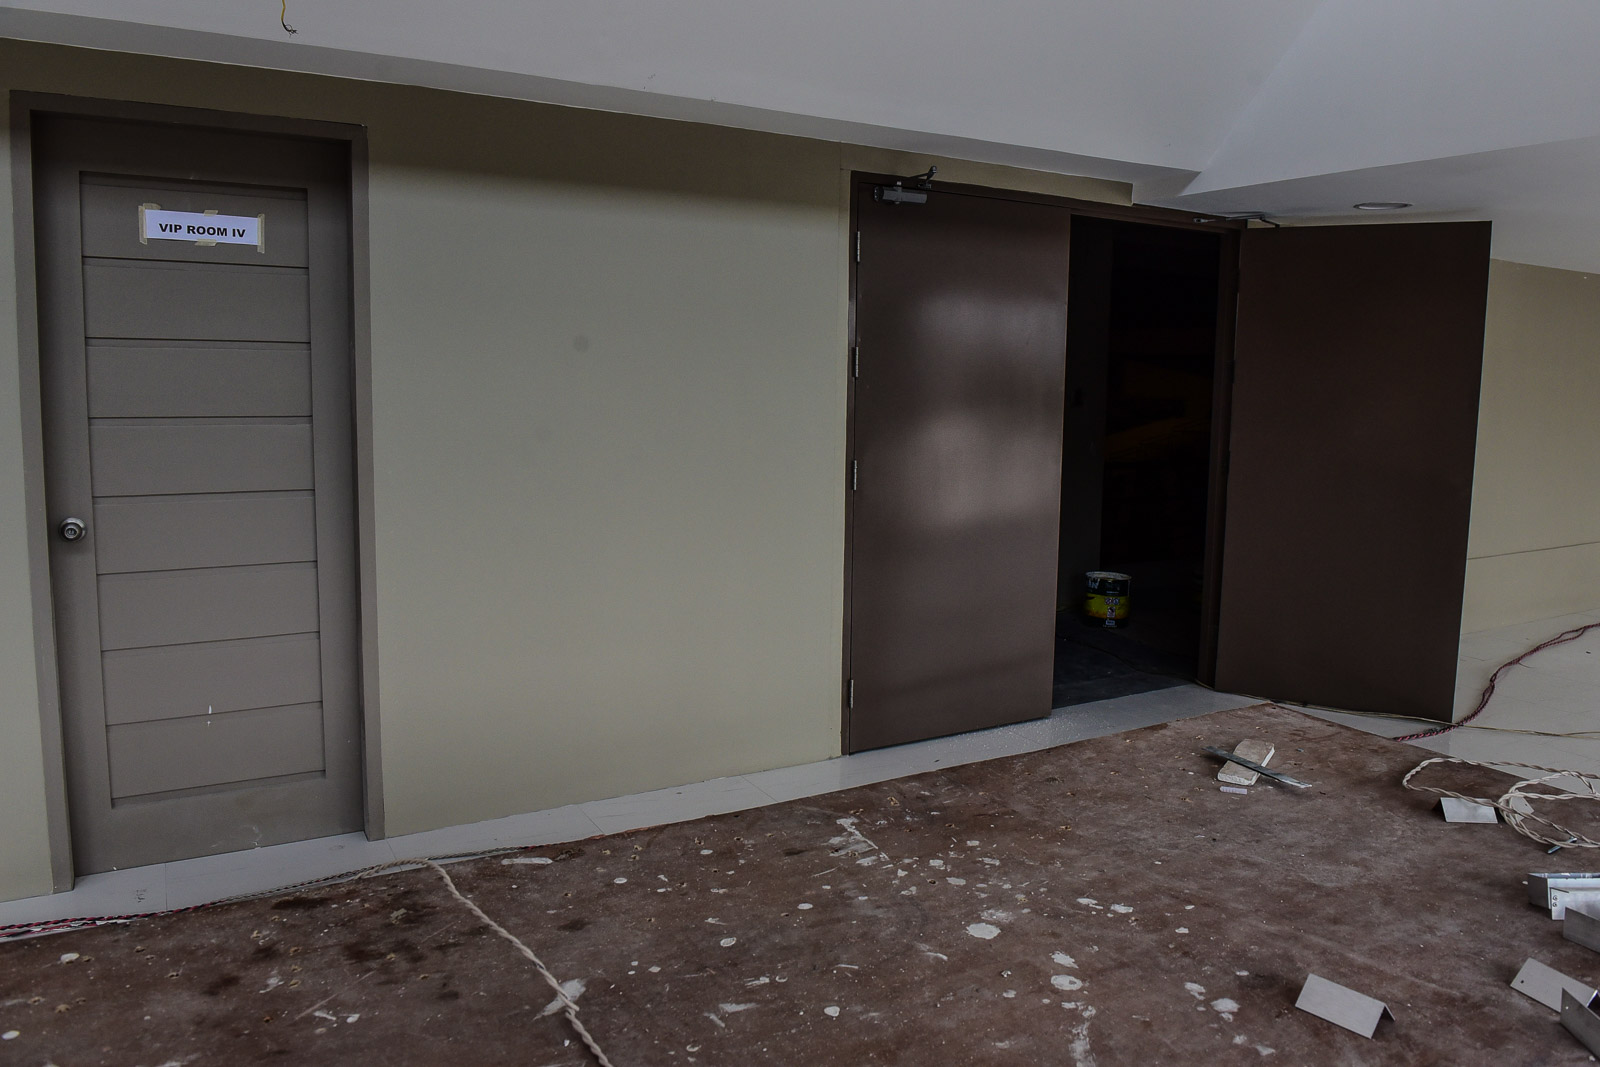 QUICK FIX. There are still ongoing renovations in several rooms, including the VIP area. Photo by LeAnne Jazul/Rappler